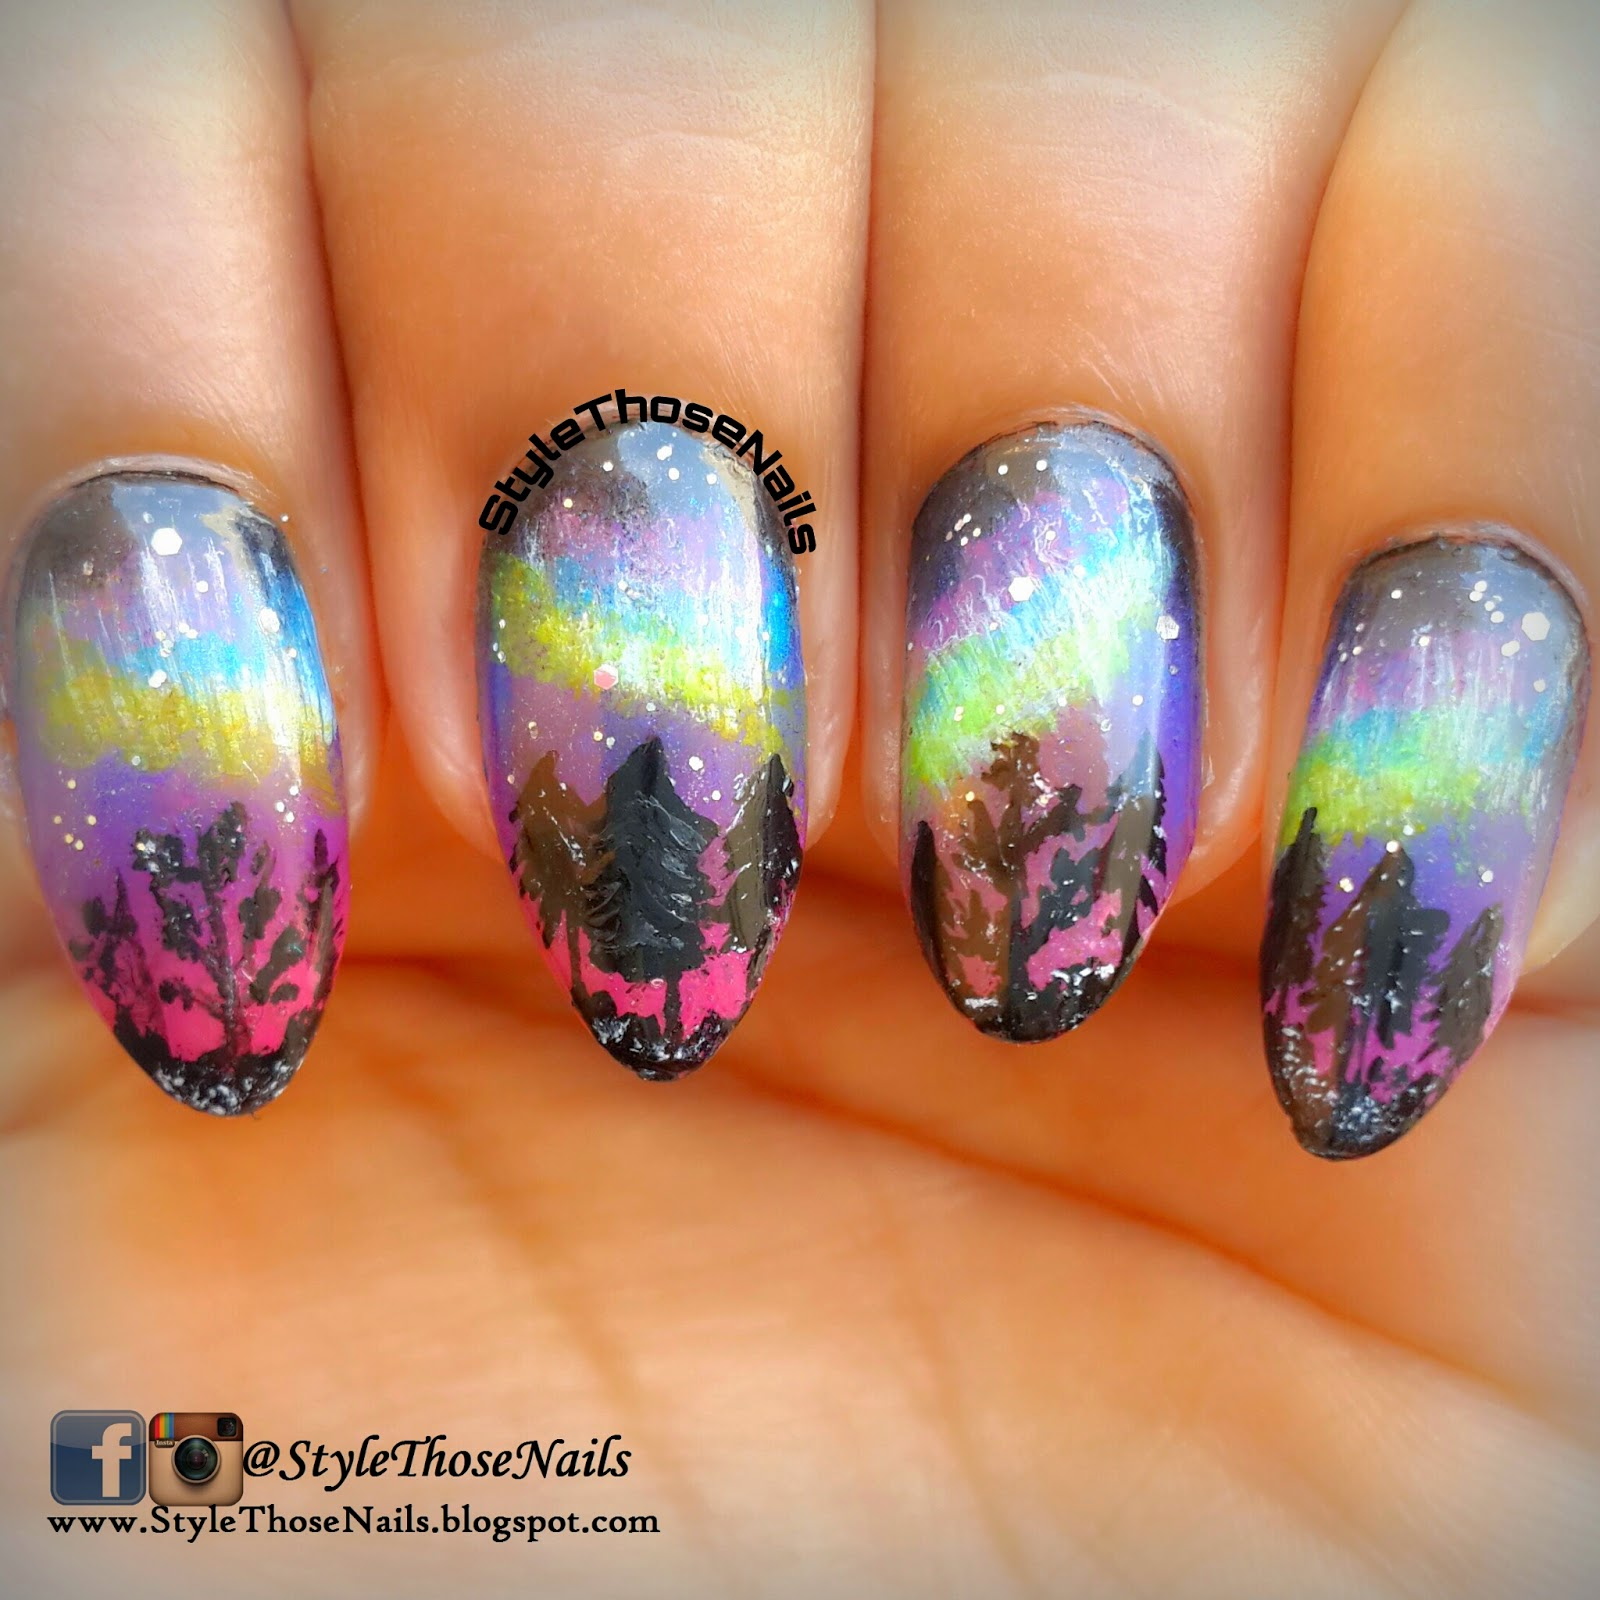 Style Those Nails Northern Lights Nail Art 52wpnmc Brush Stroke